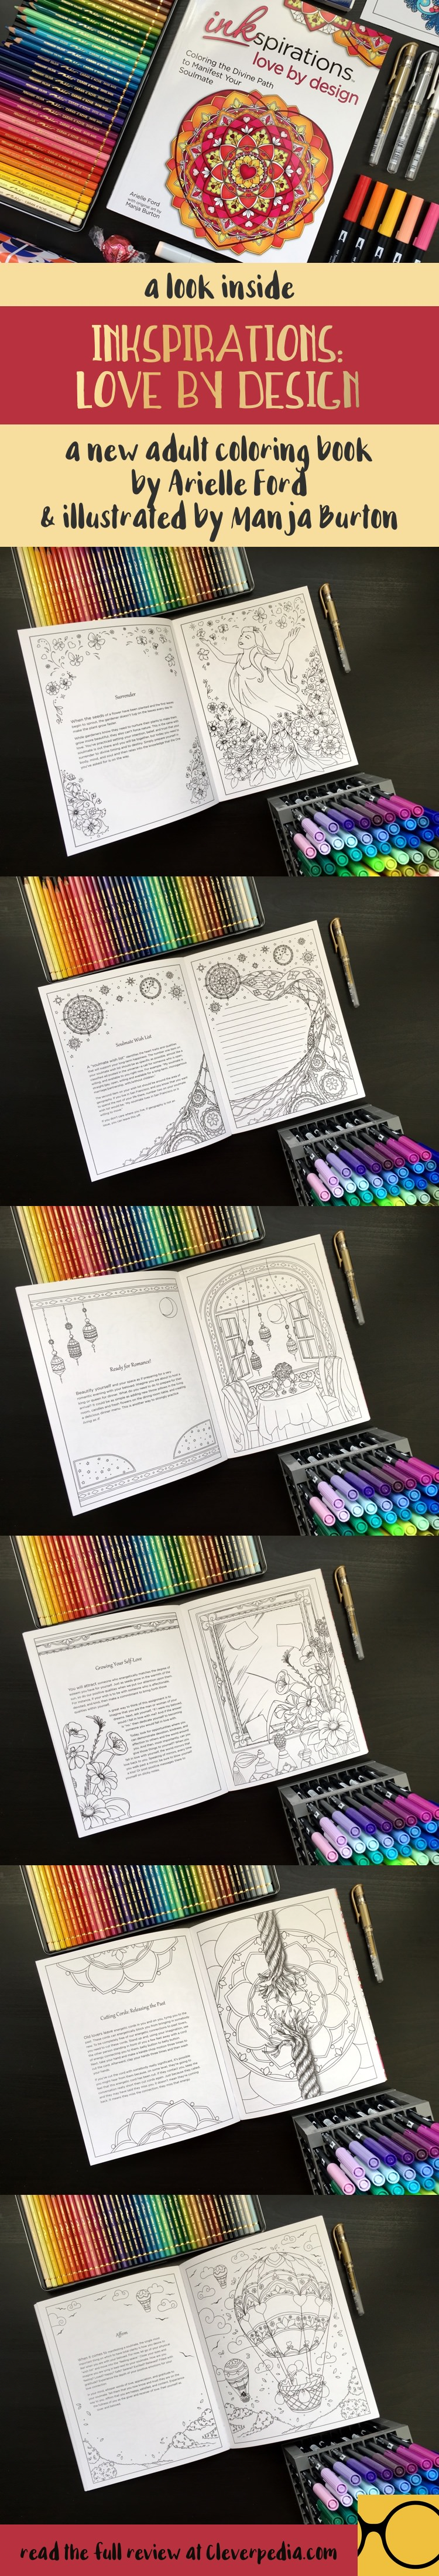 A look inside Inkspirations: Love by Design, a new coloring book to help you find your soulmate.